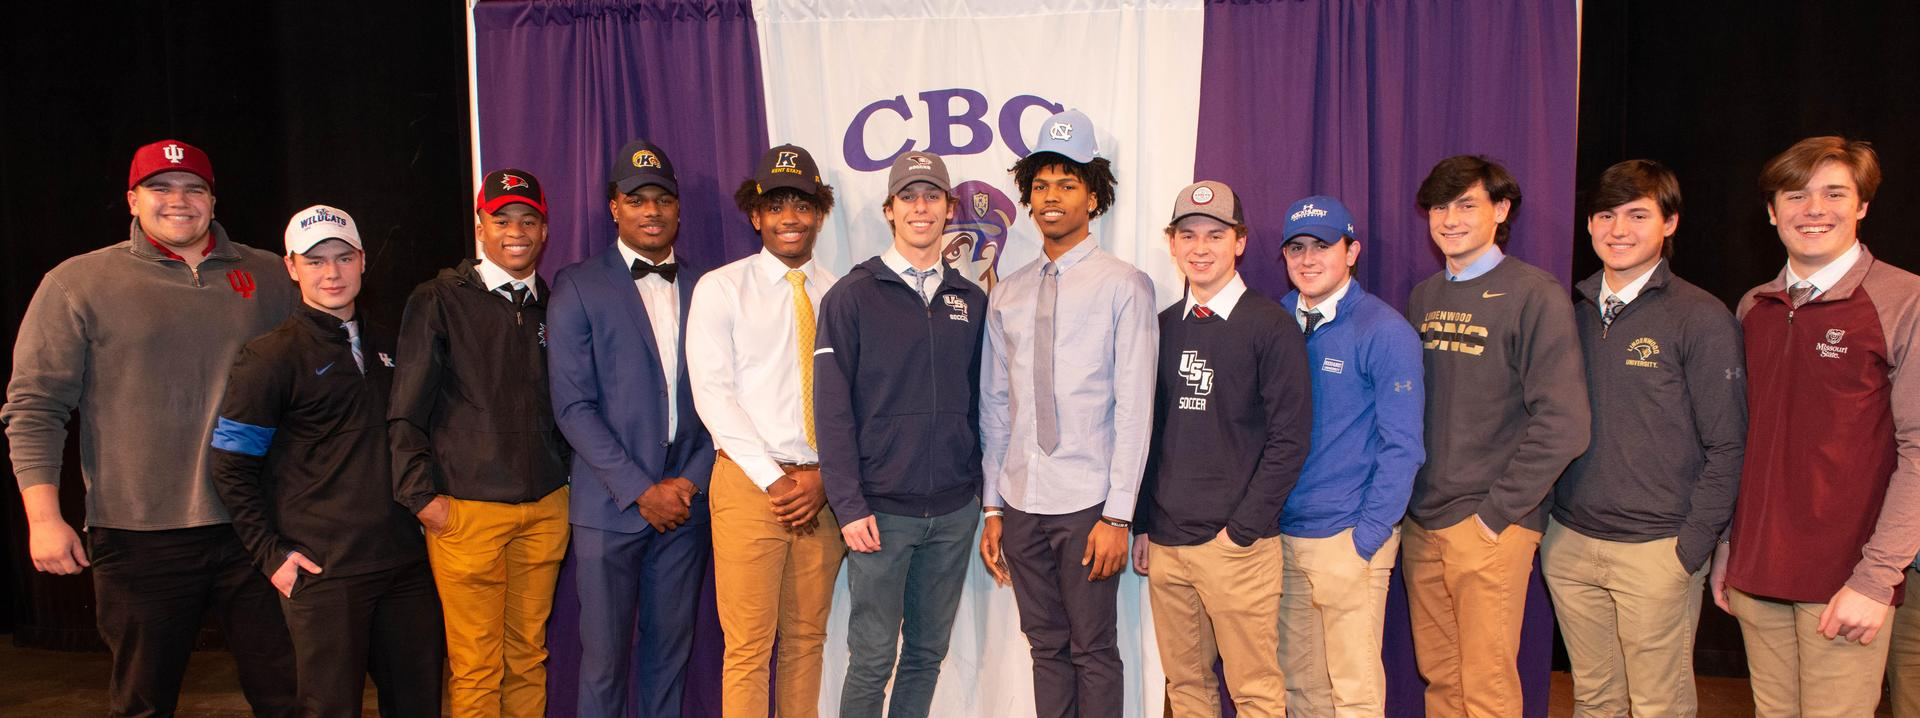 Signing Day 2020 group photo